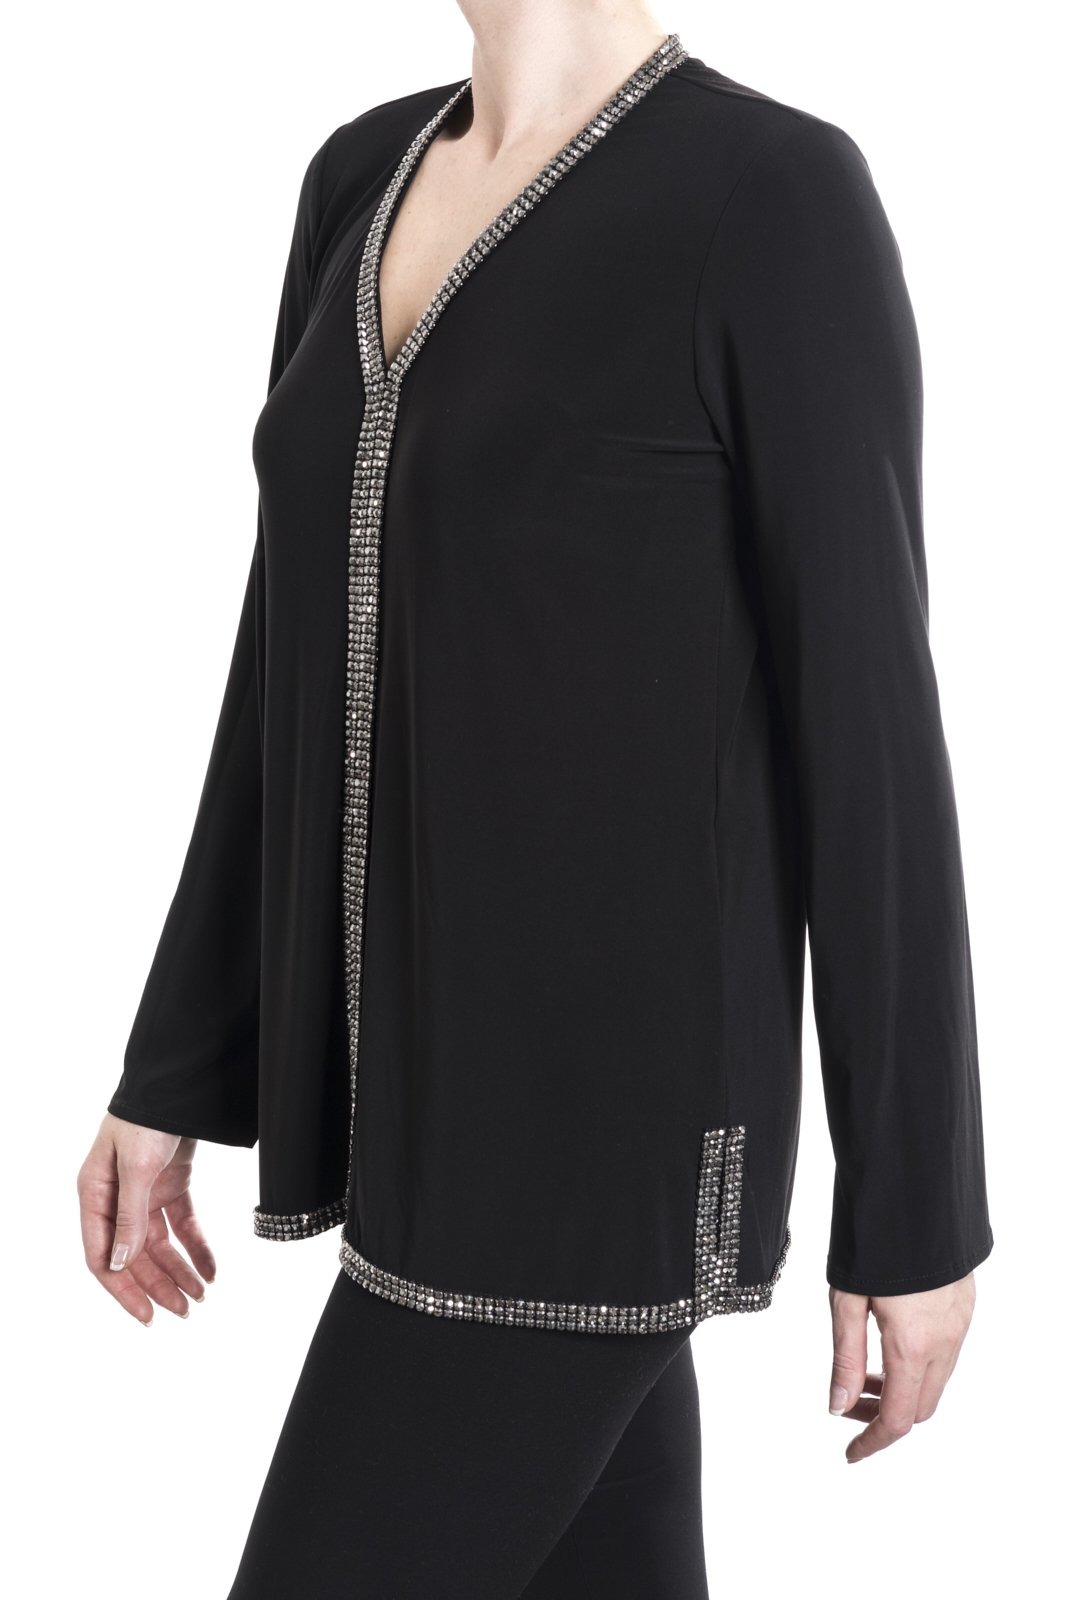 Joseph Ribkoff Black Sequin Trim Long Sleeve Blouse Style 181070 Size 8